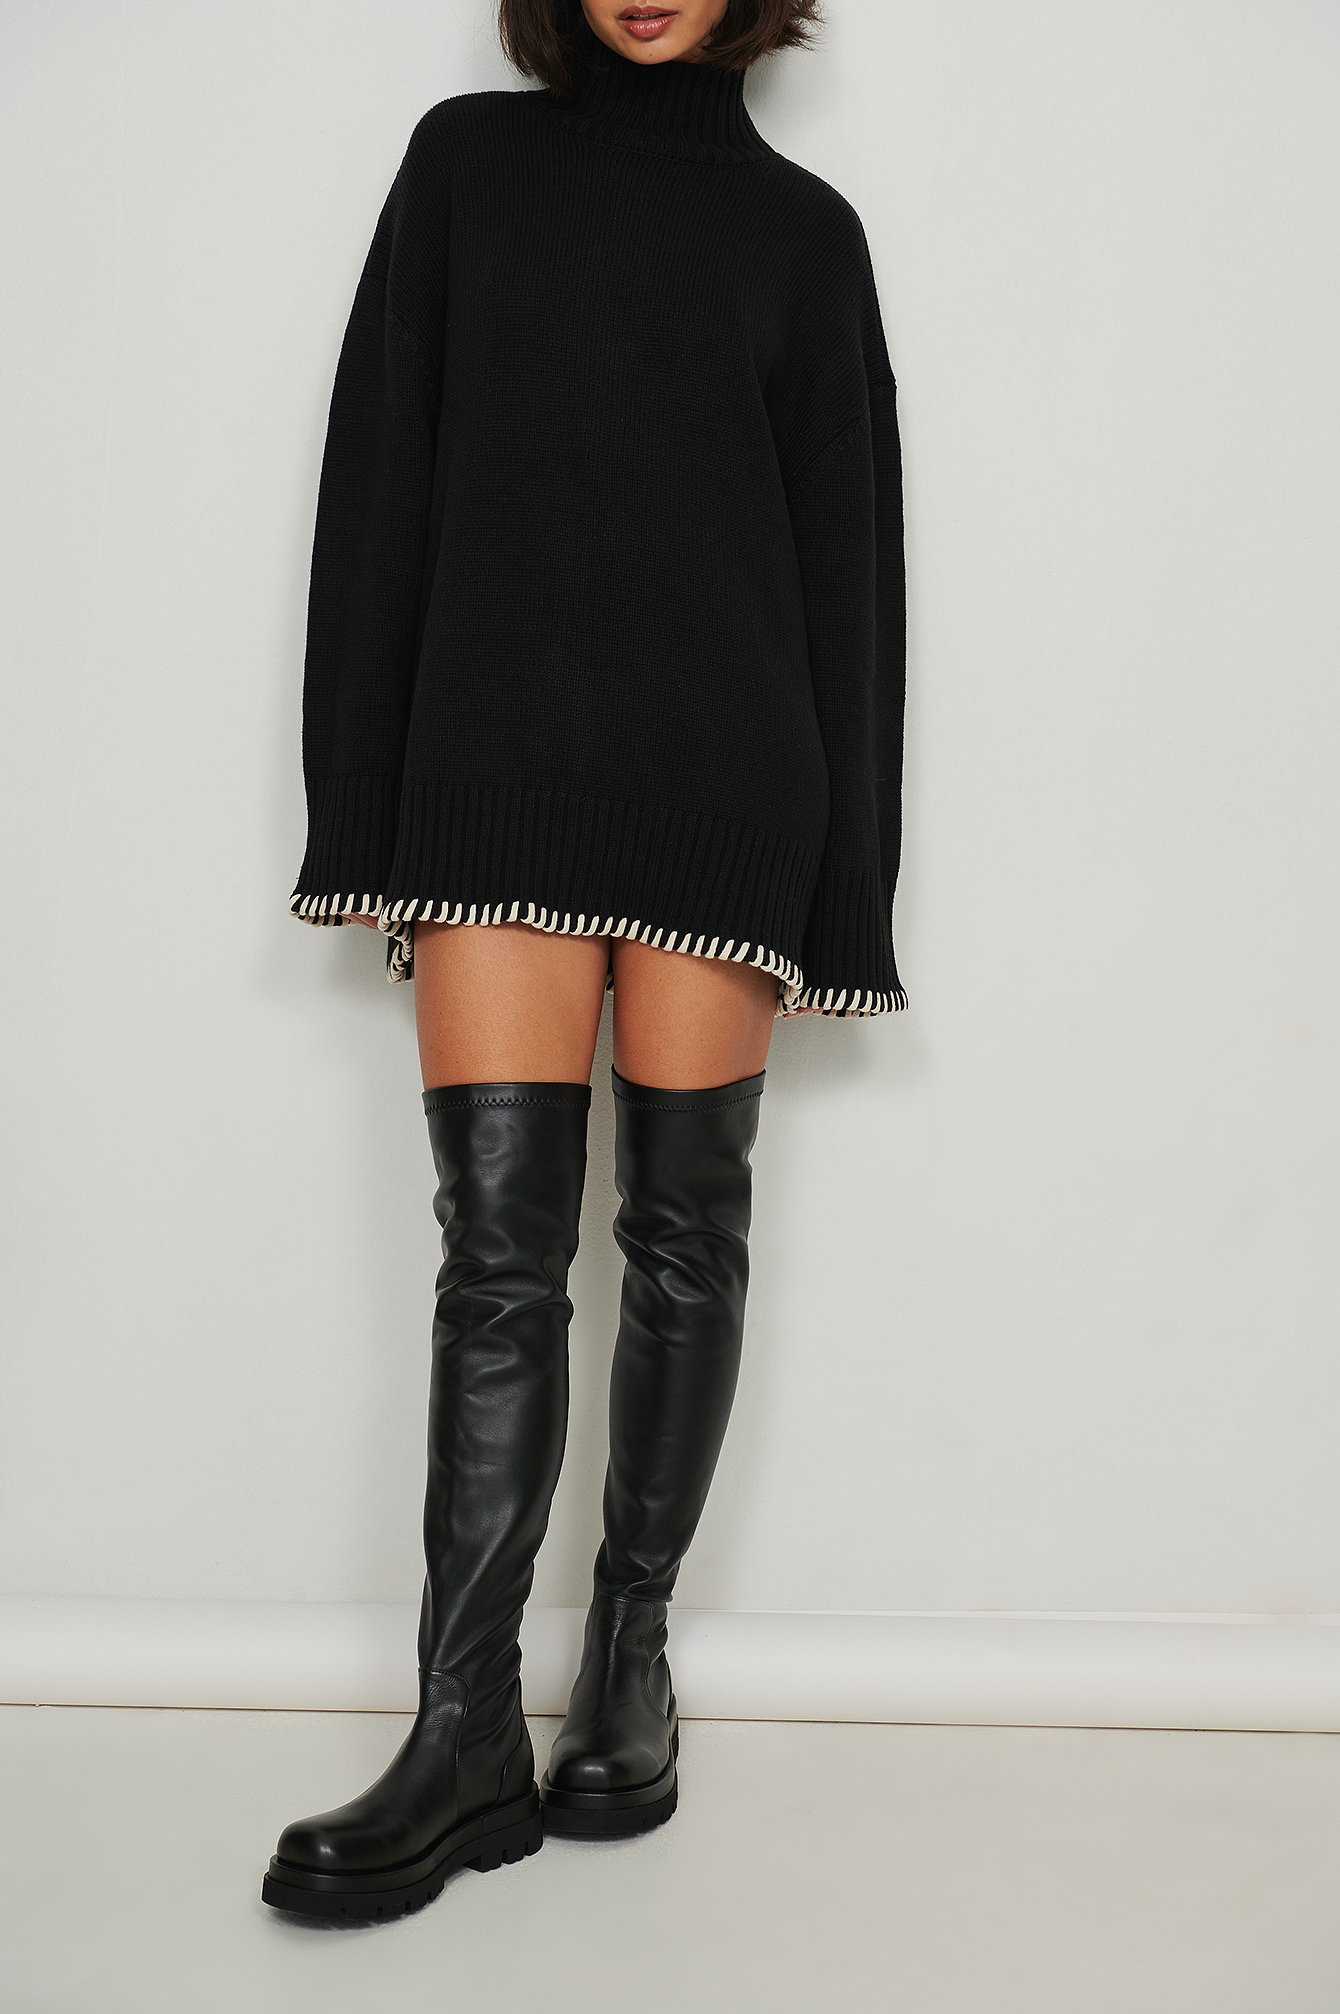 NA-KD Shoes Chunky Overknee Leather Boots - Black